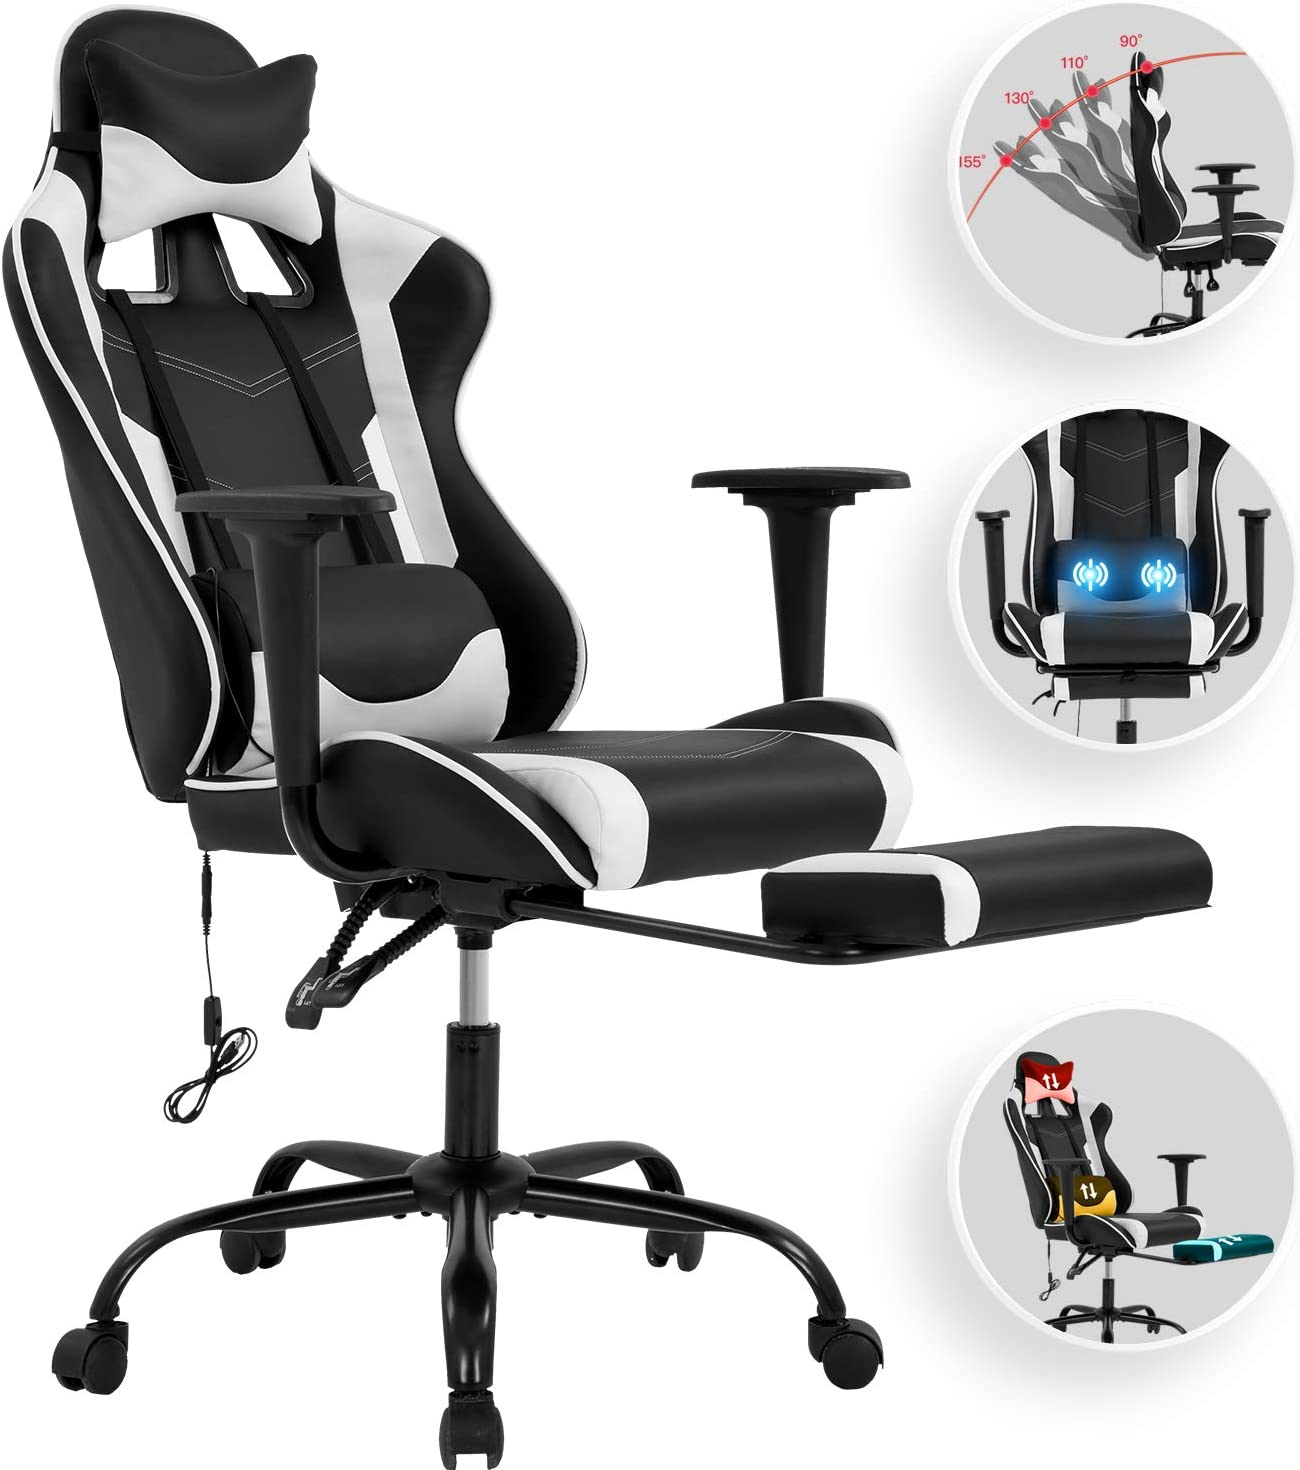 Vnewone Computer Gaming Chair Office PC Ergonomic Home Executive Desk Racing Rolling Swivel Task Adjustable High-Back PU Leather with Lumbar Support Footrest Headrest Armrest Massager, White